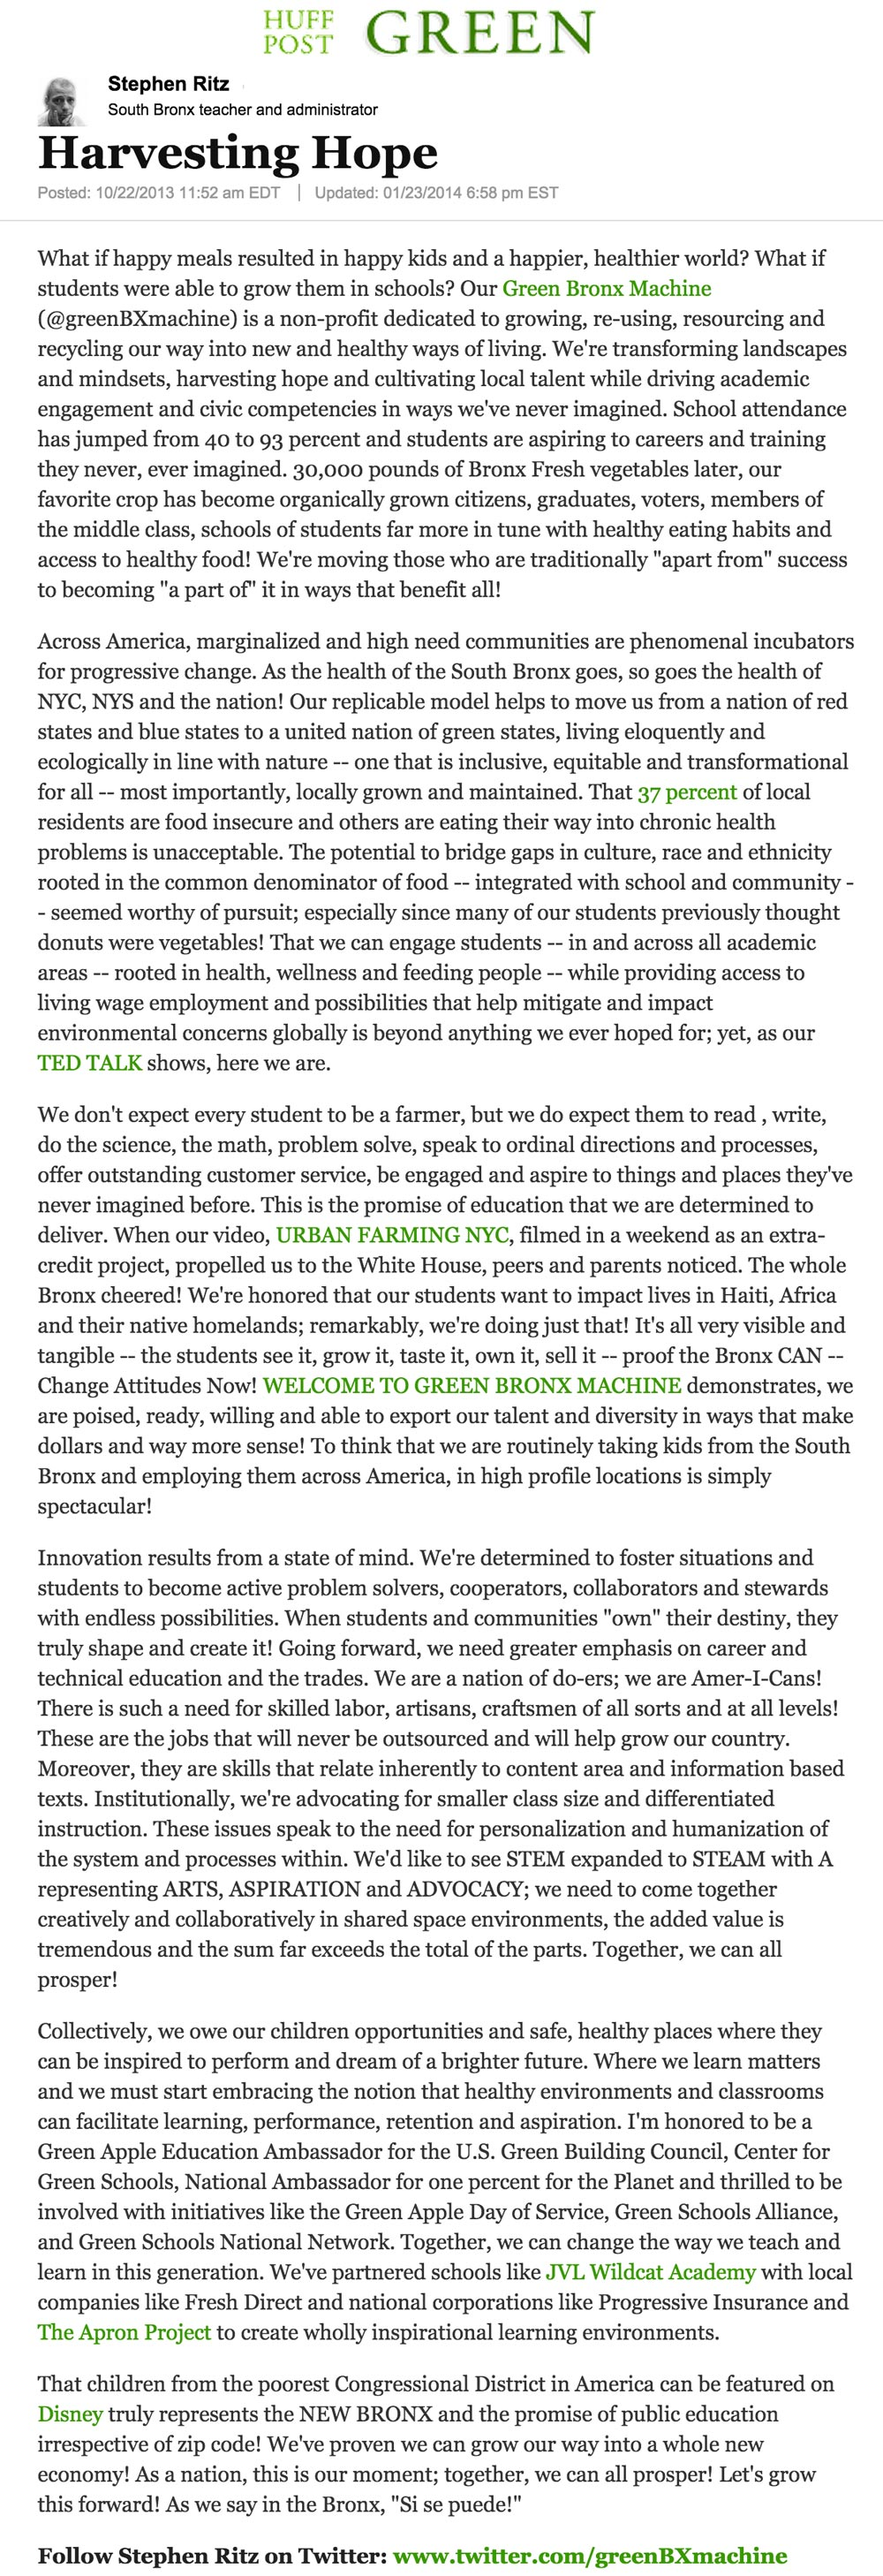 The Huffington Post - Harvesting Hope by Stephen Ritz